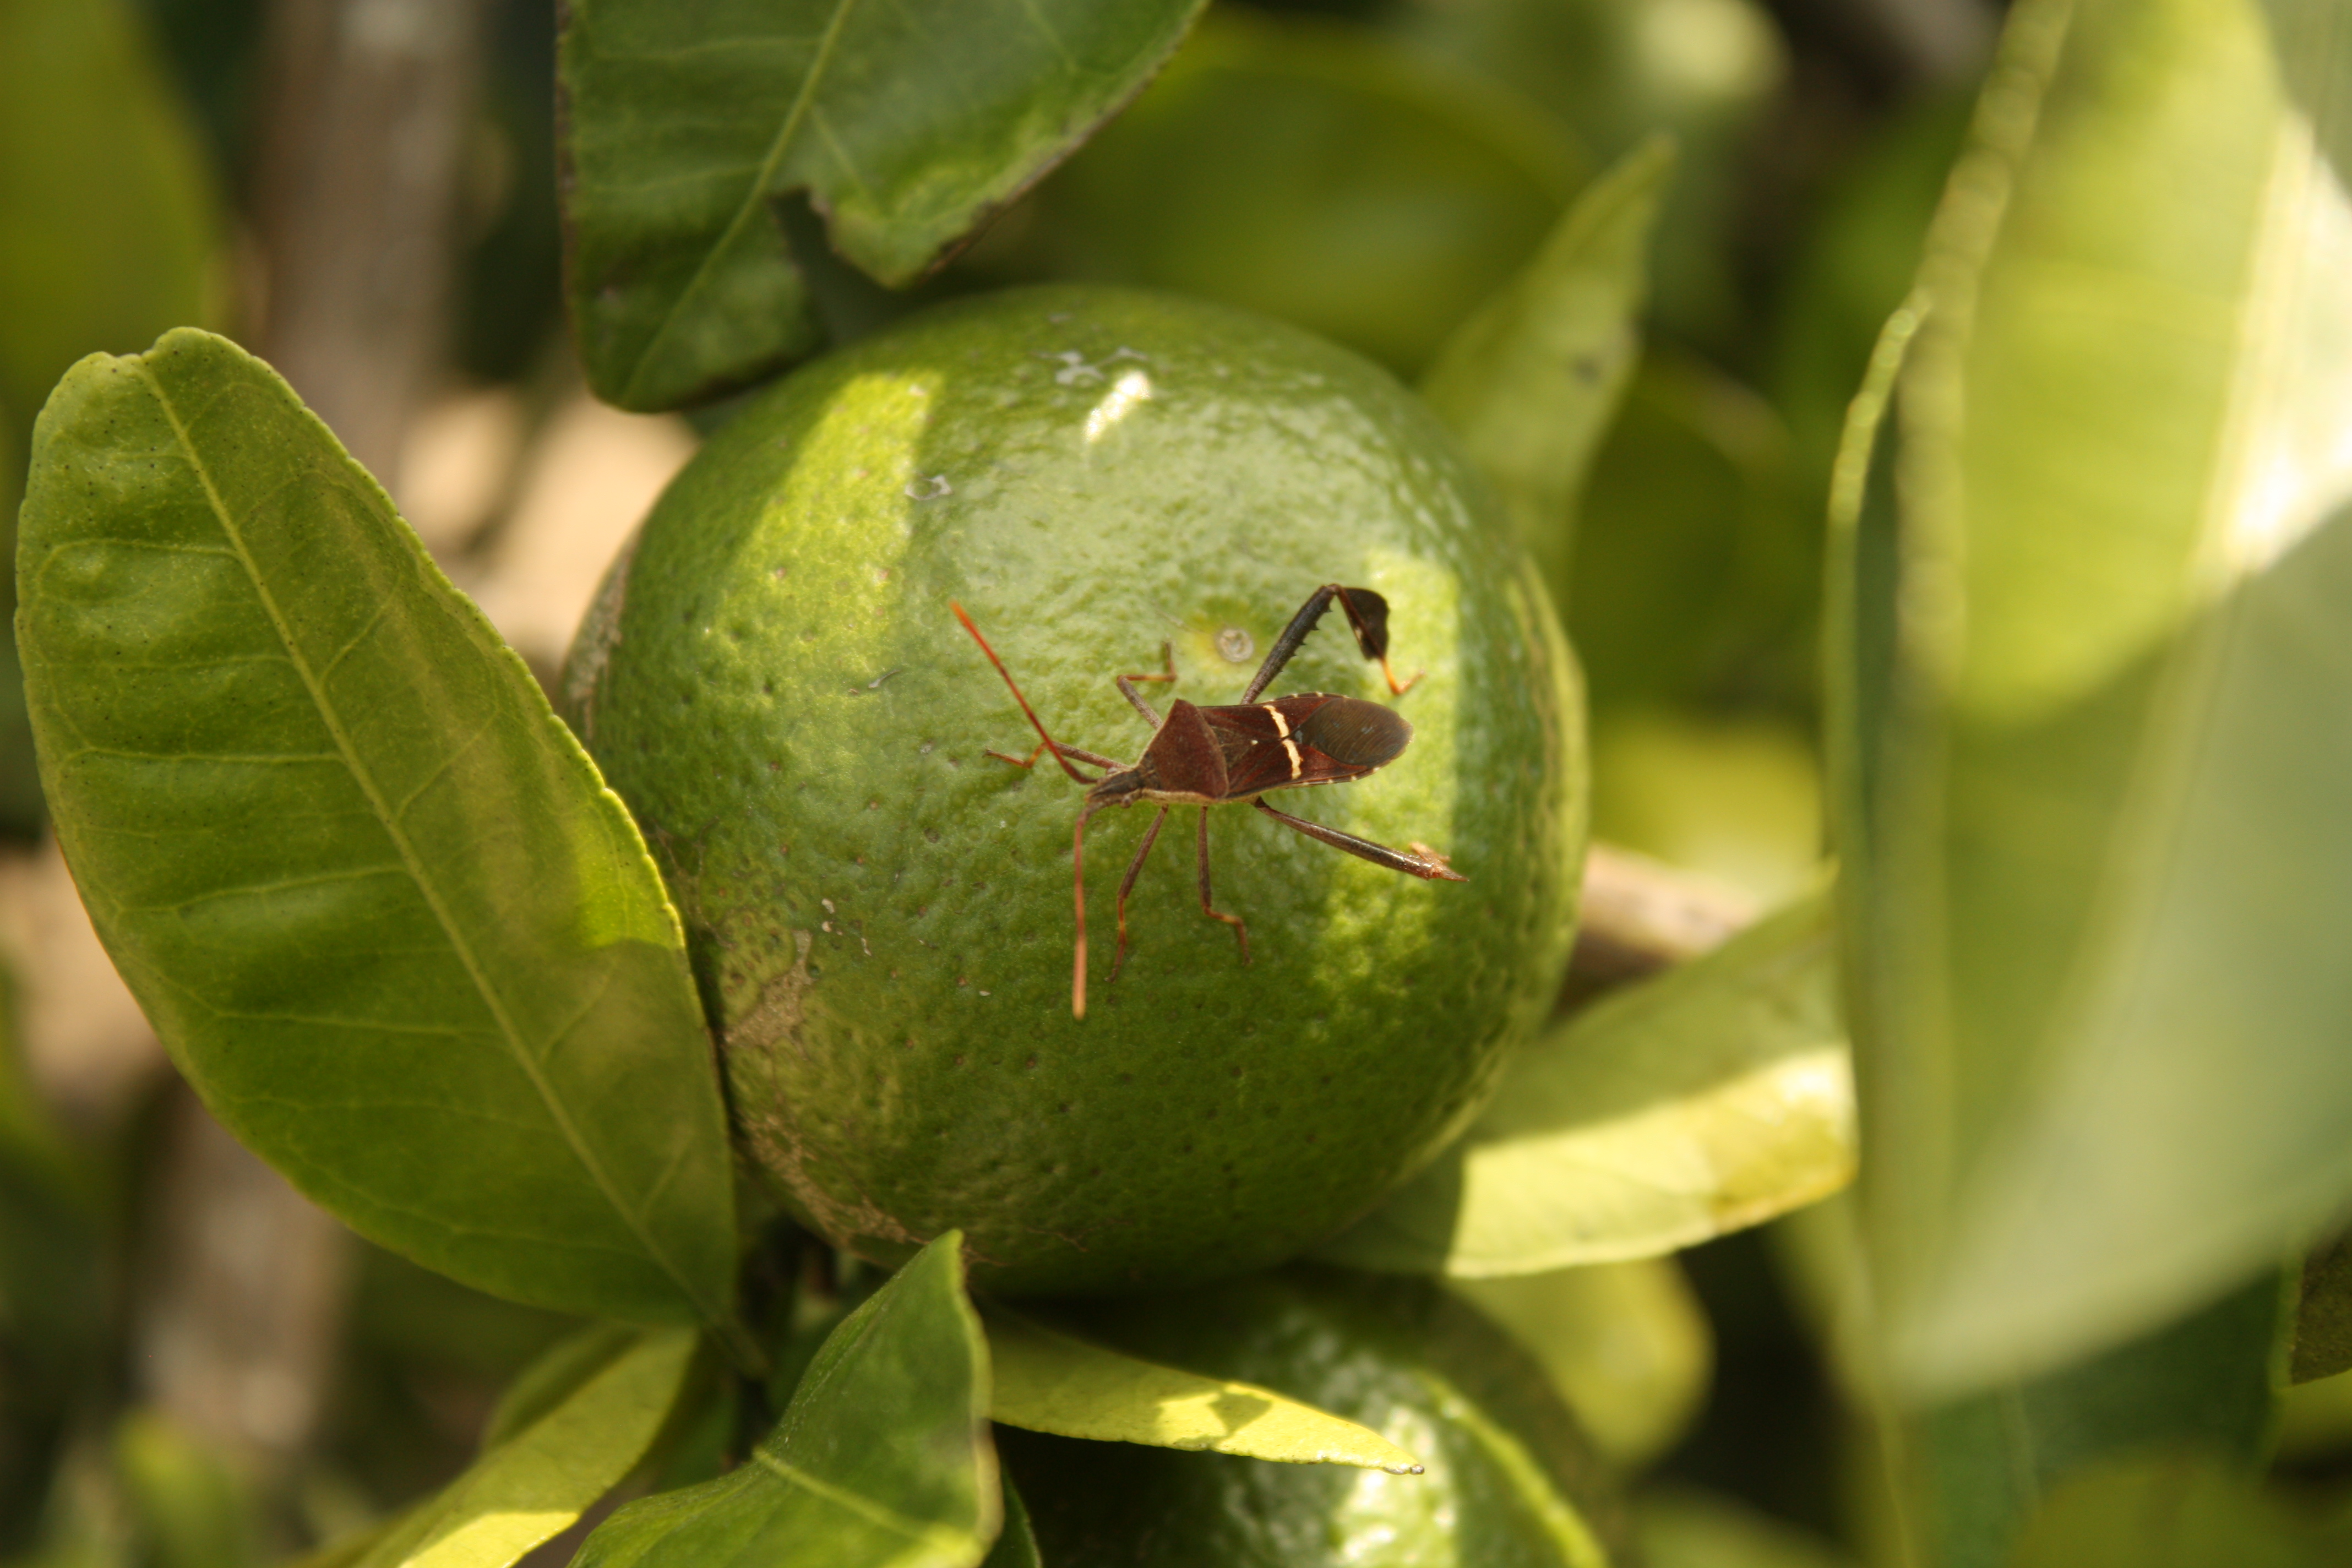 Citrus Insect Study, 4th Posting